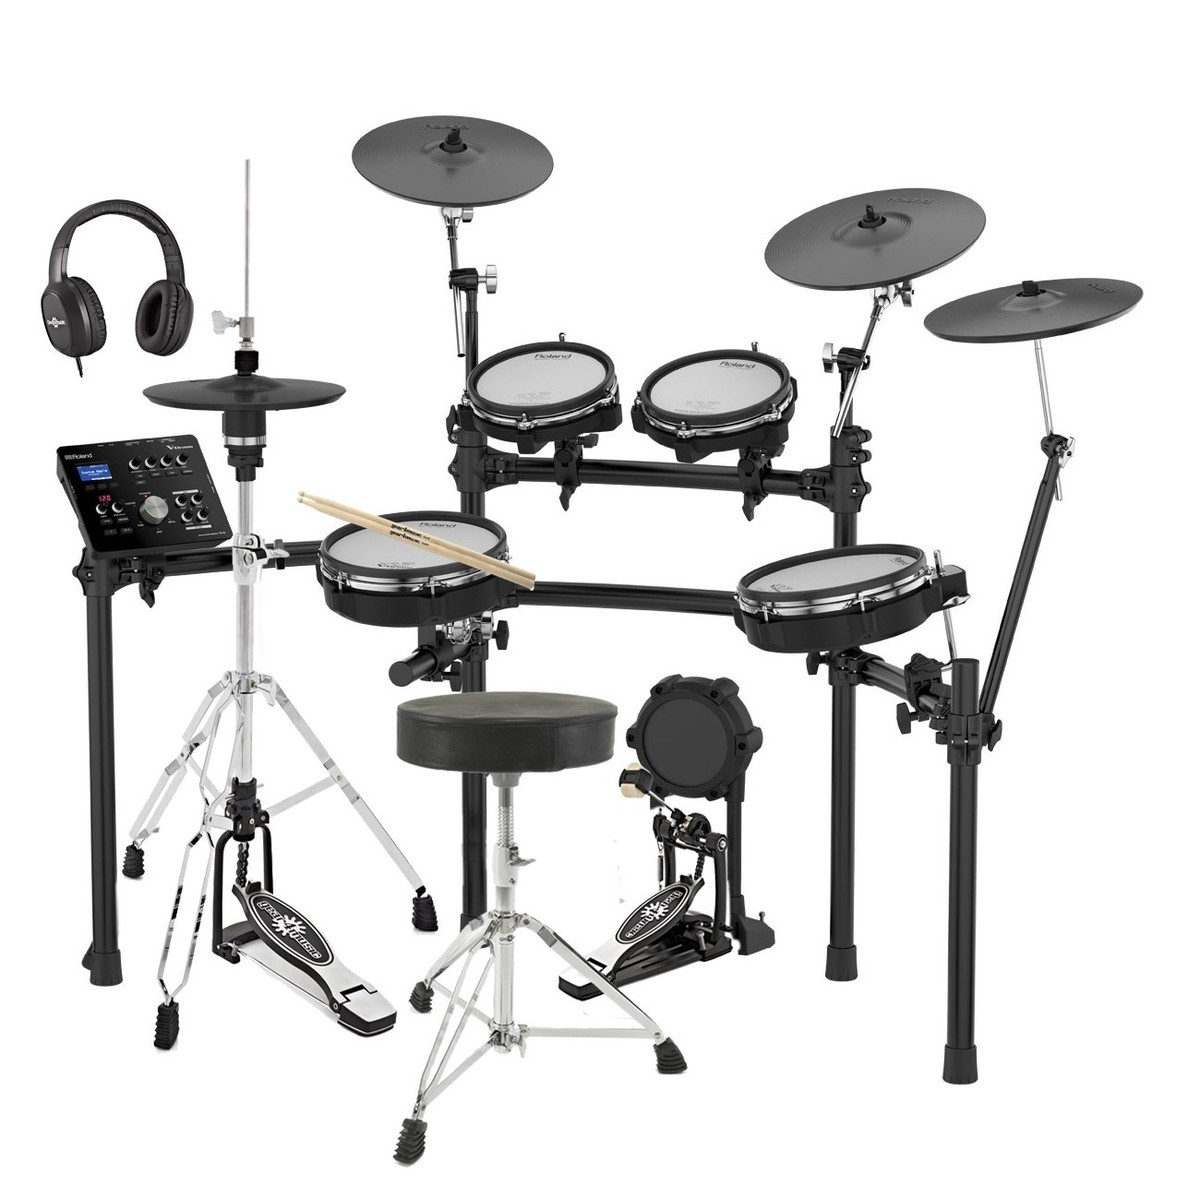 Roland Td 25kv V Drums Electronic Drum Kit With Accessory Pack At Mains Trigger Musical Door Bell Circuit Main Image Loading Zoom